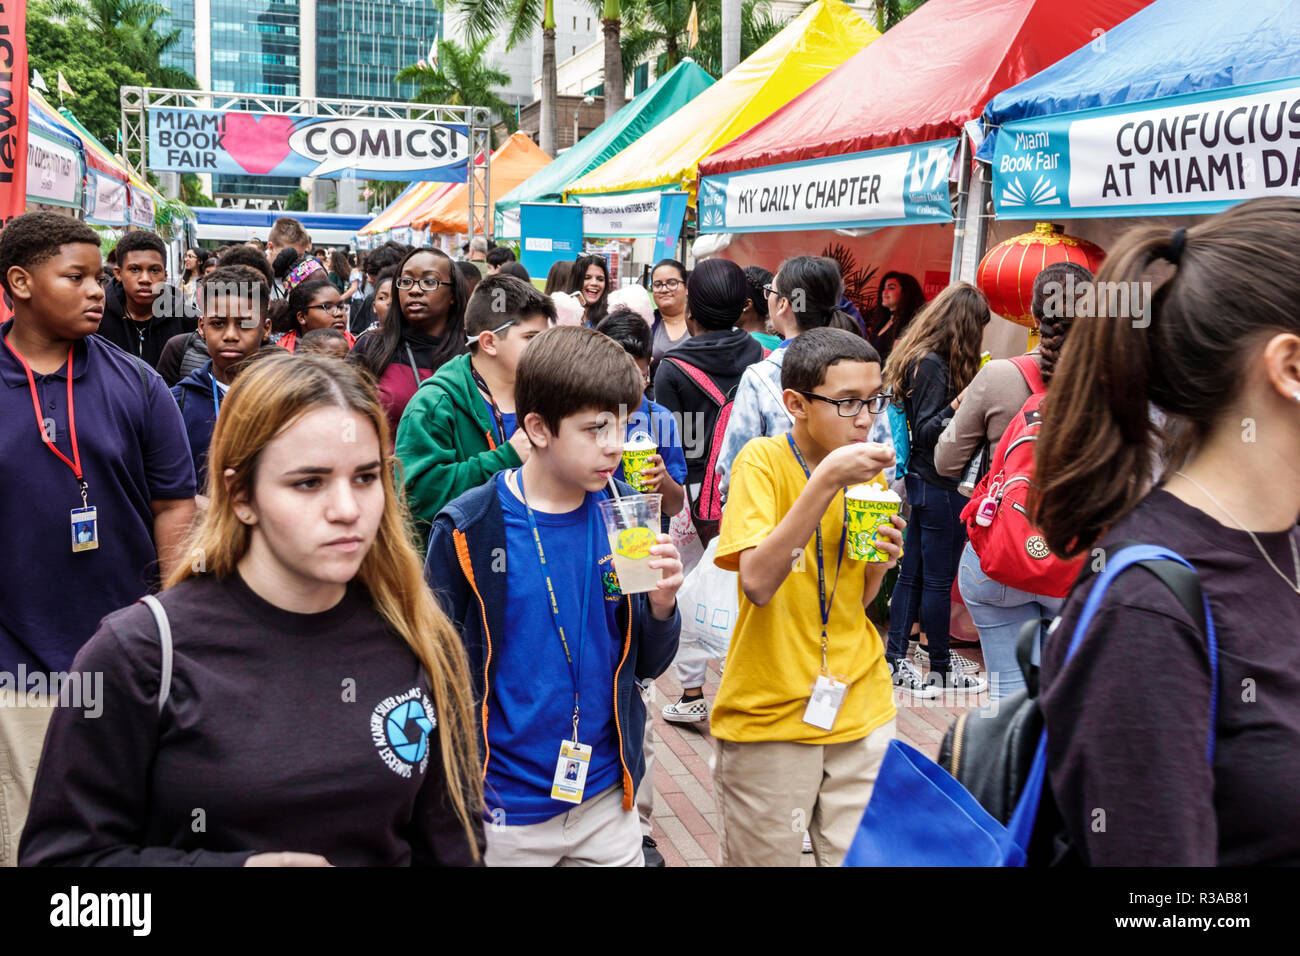 Miami Miami Florida-Dade College Book Fair annual event booths stalls vendors booksellers books sale shopping student boy girl Hispanic Black friends - Stock Image